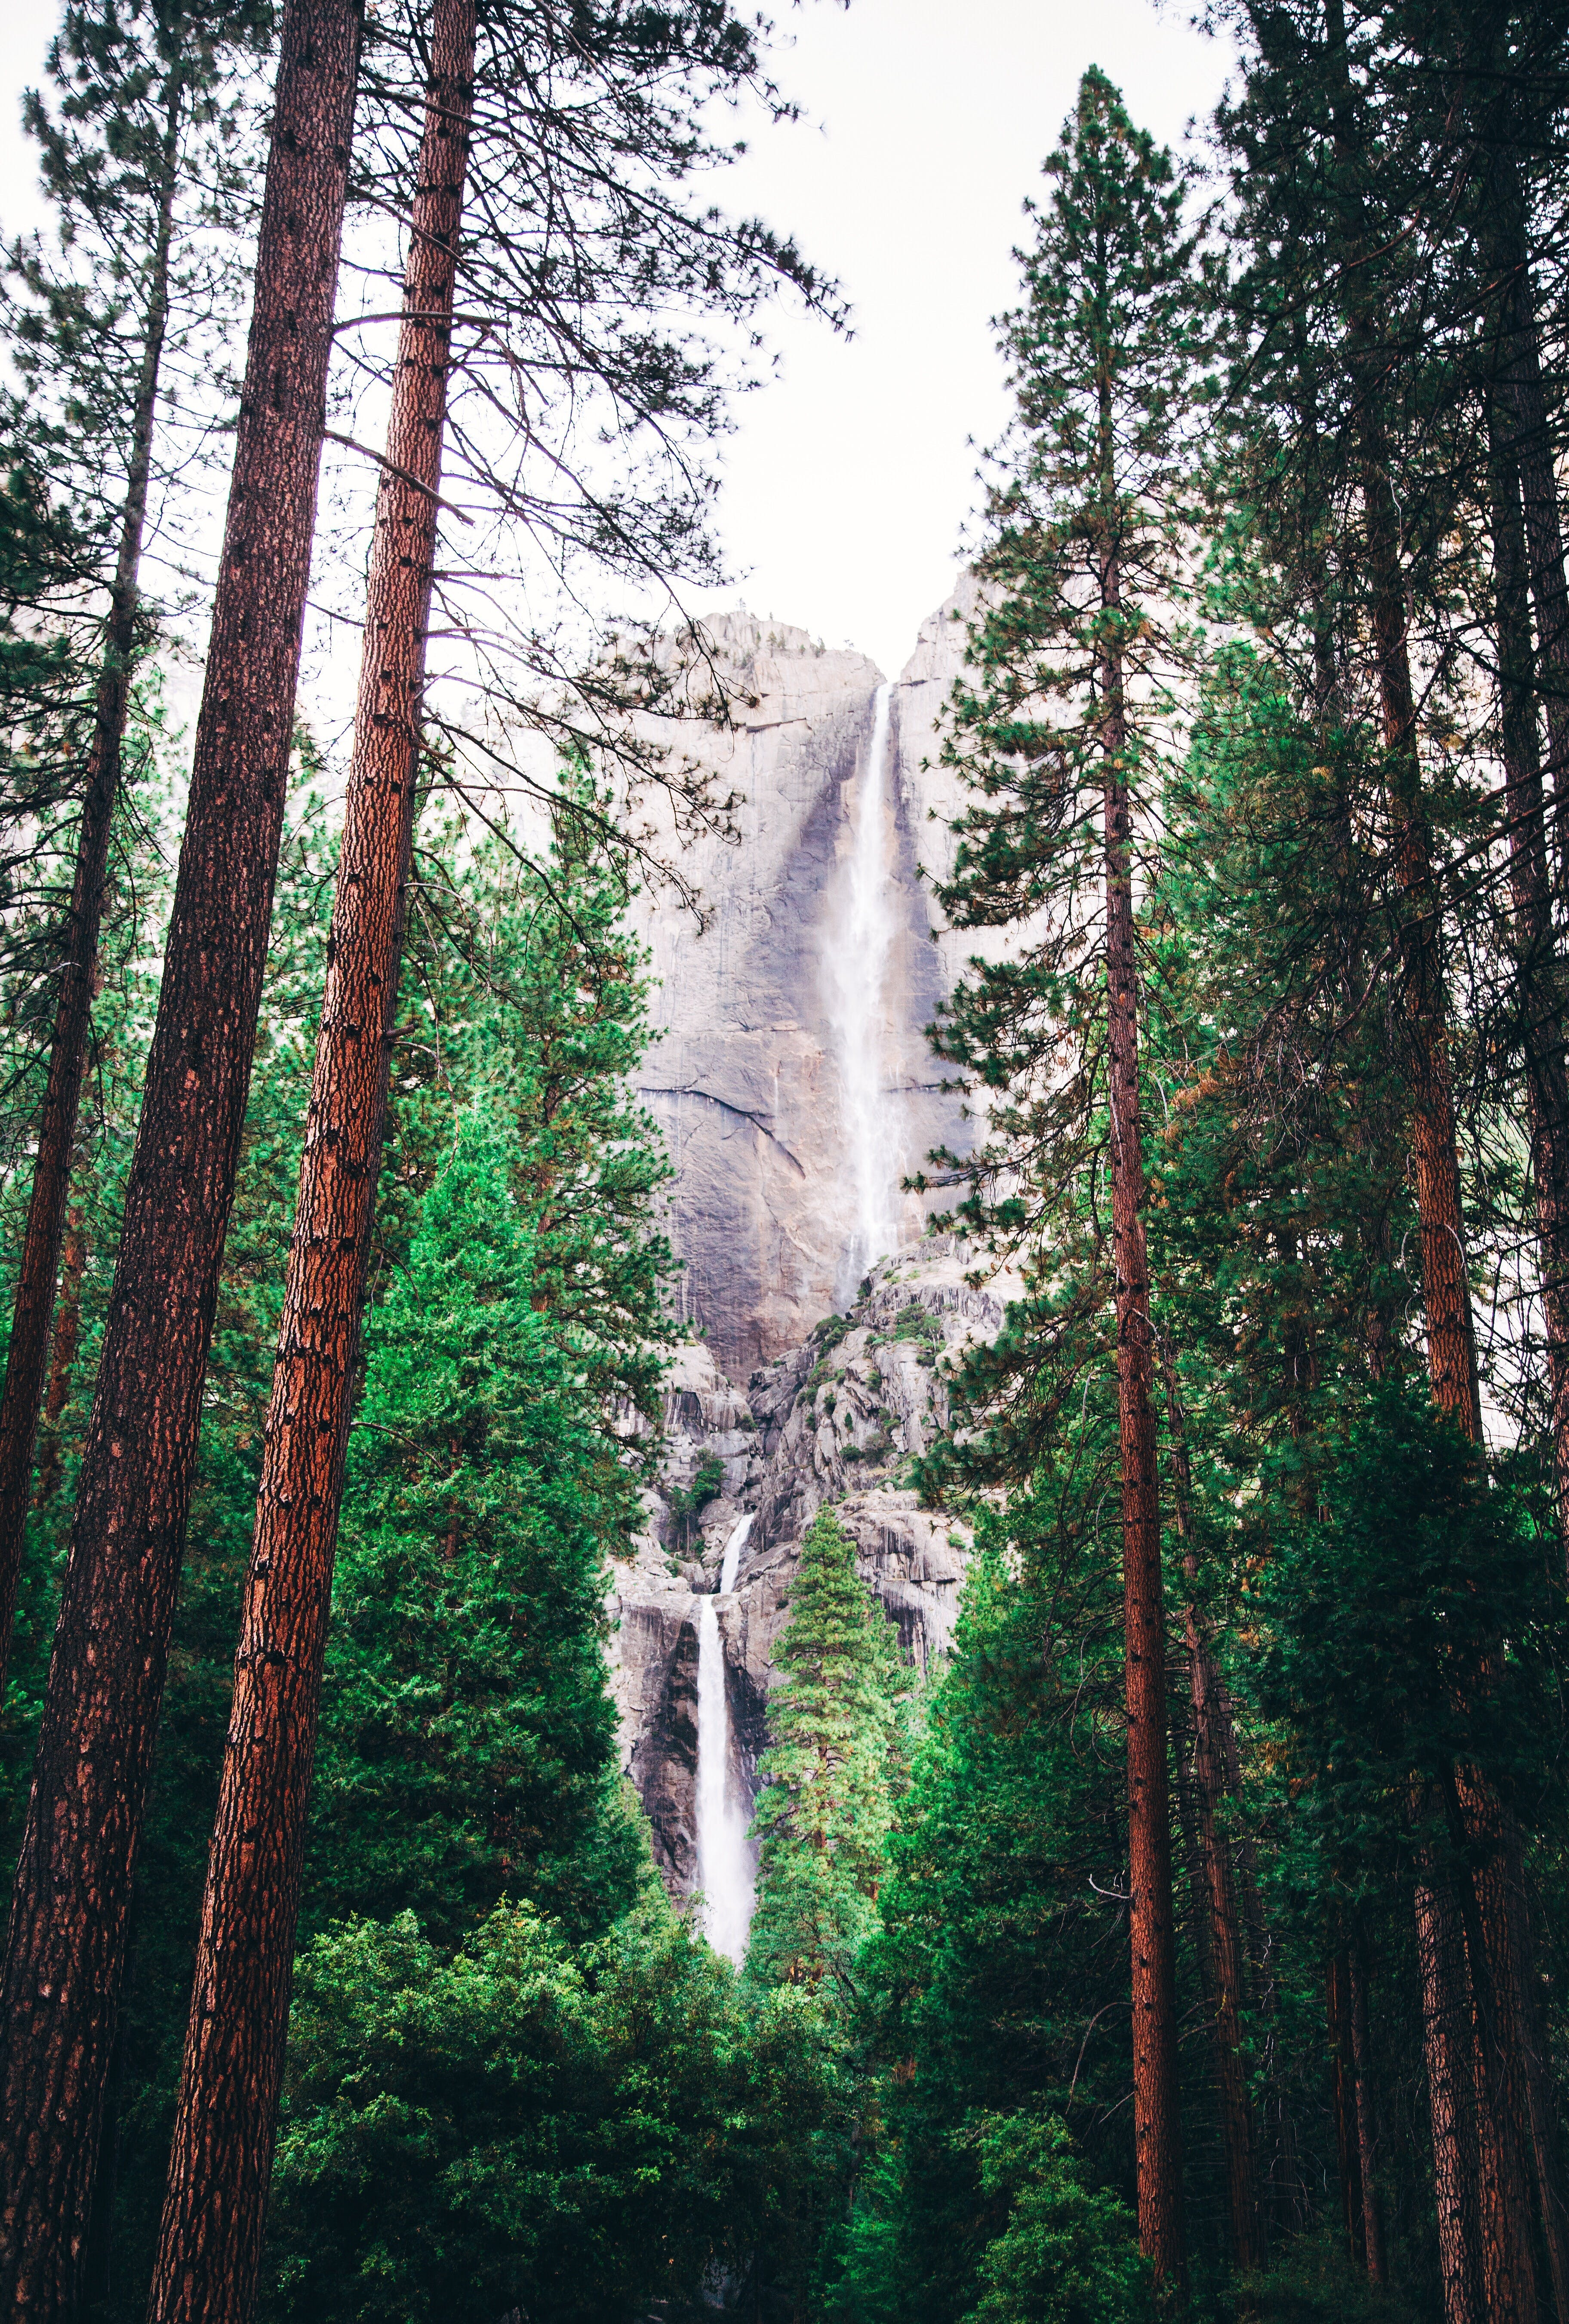 Landscape Photography of Green Trees and Water Falls